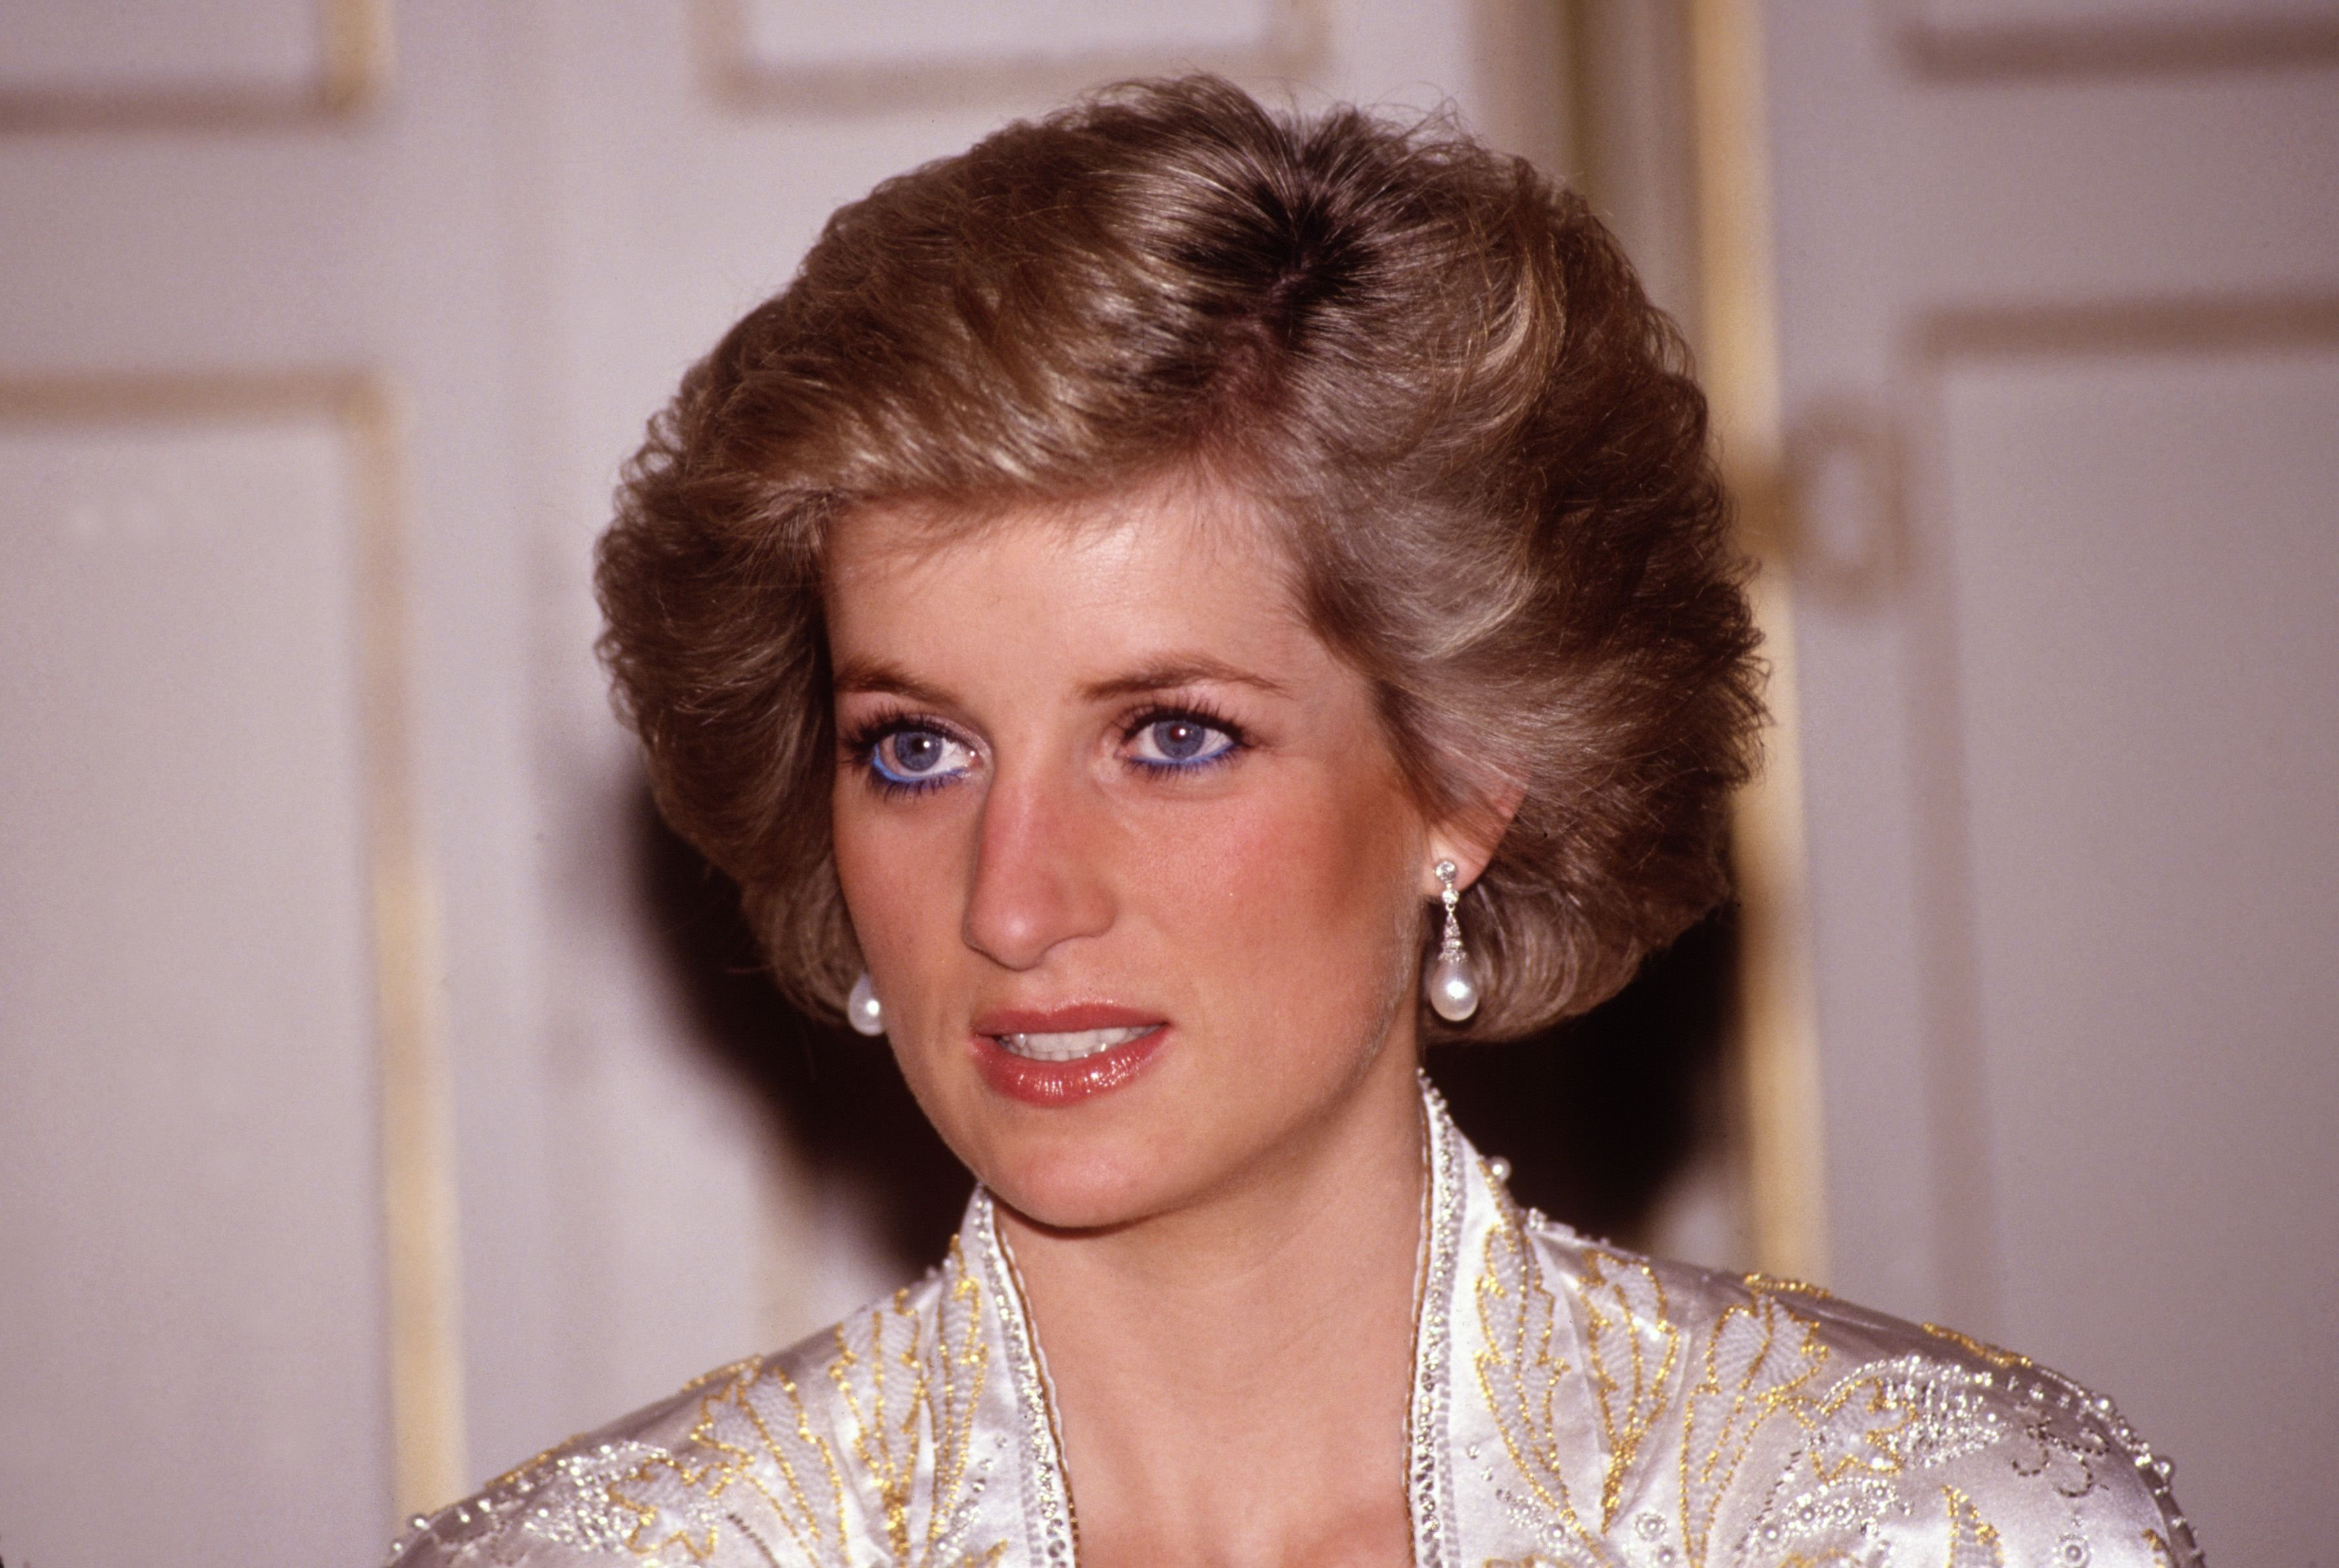 Princess Diana at the Elysee Palace in 1988 in Paris, France   Source: Getty Images